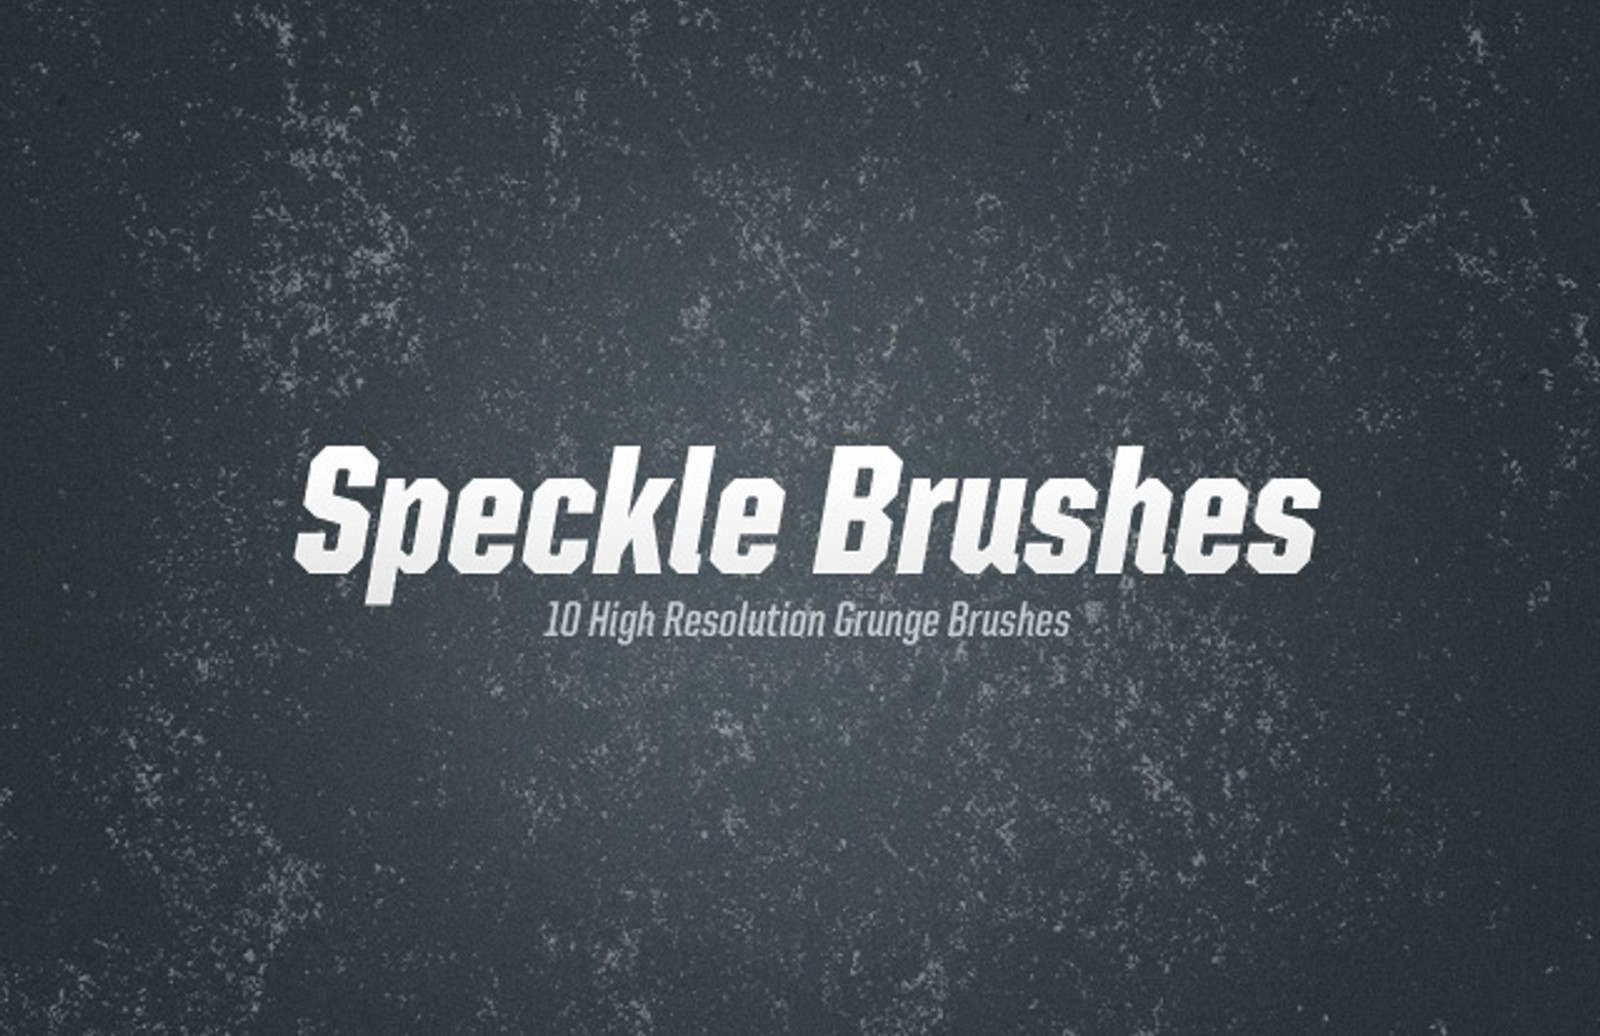 Grunge  Speckle  Brushes  Preview1